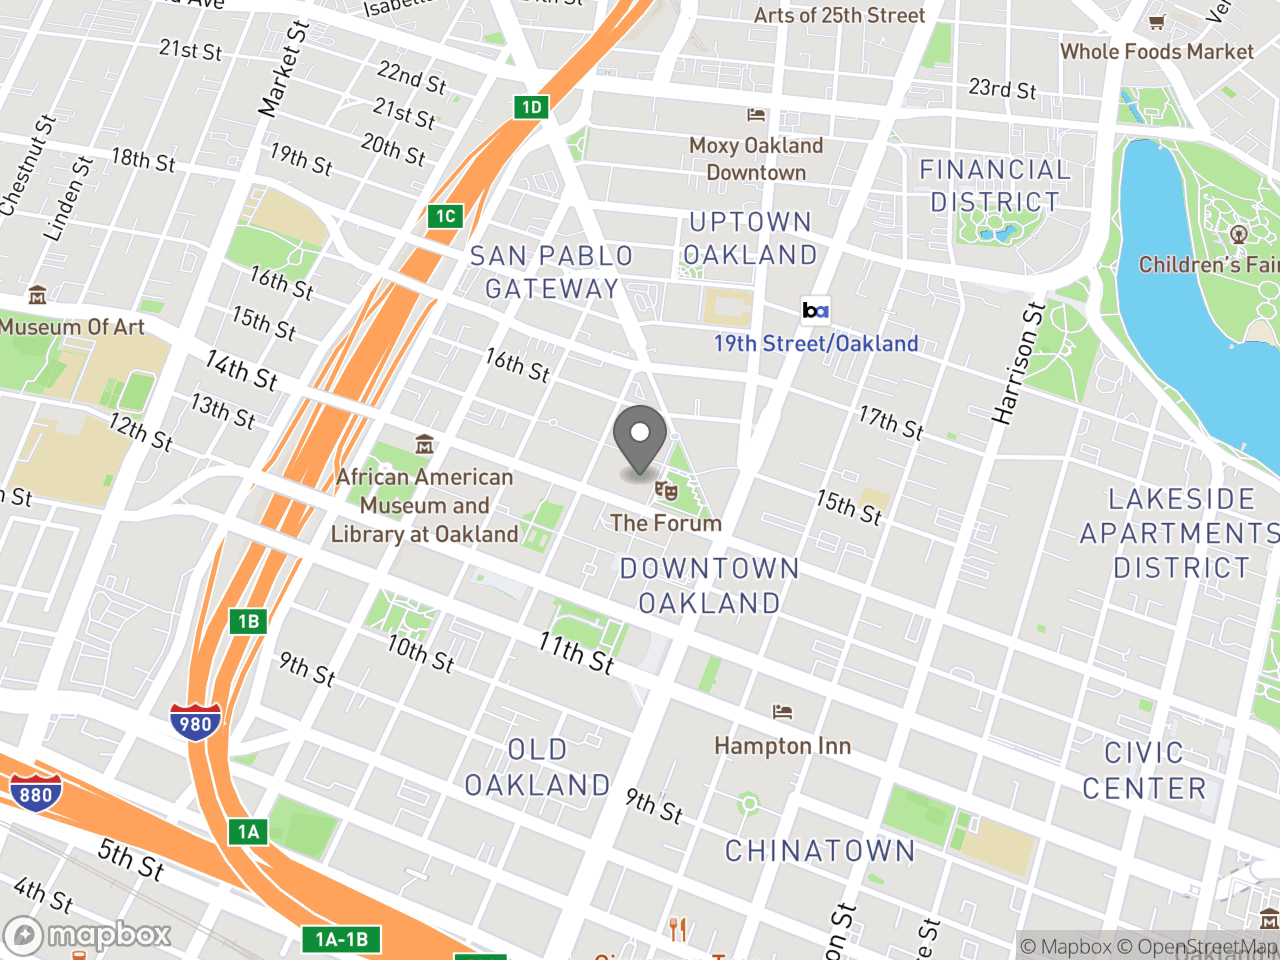 Map image for Public Safety and Services Violence Prevention Oversight Commission (SSOC), located at 1 Frank H Ogawa Plaza in Oakland, CA 94612